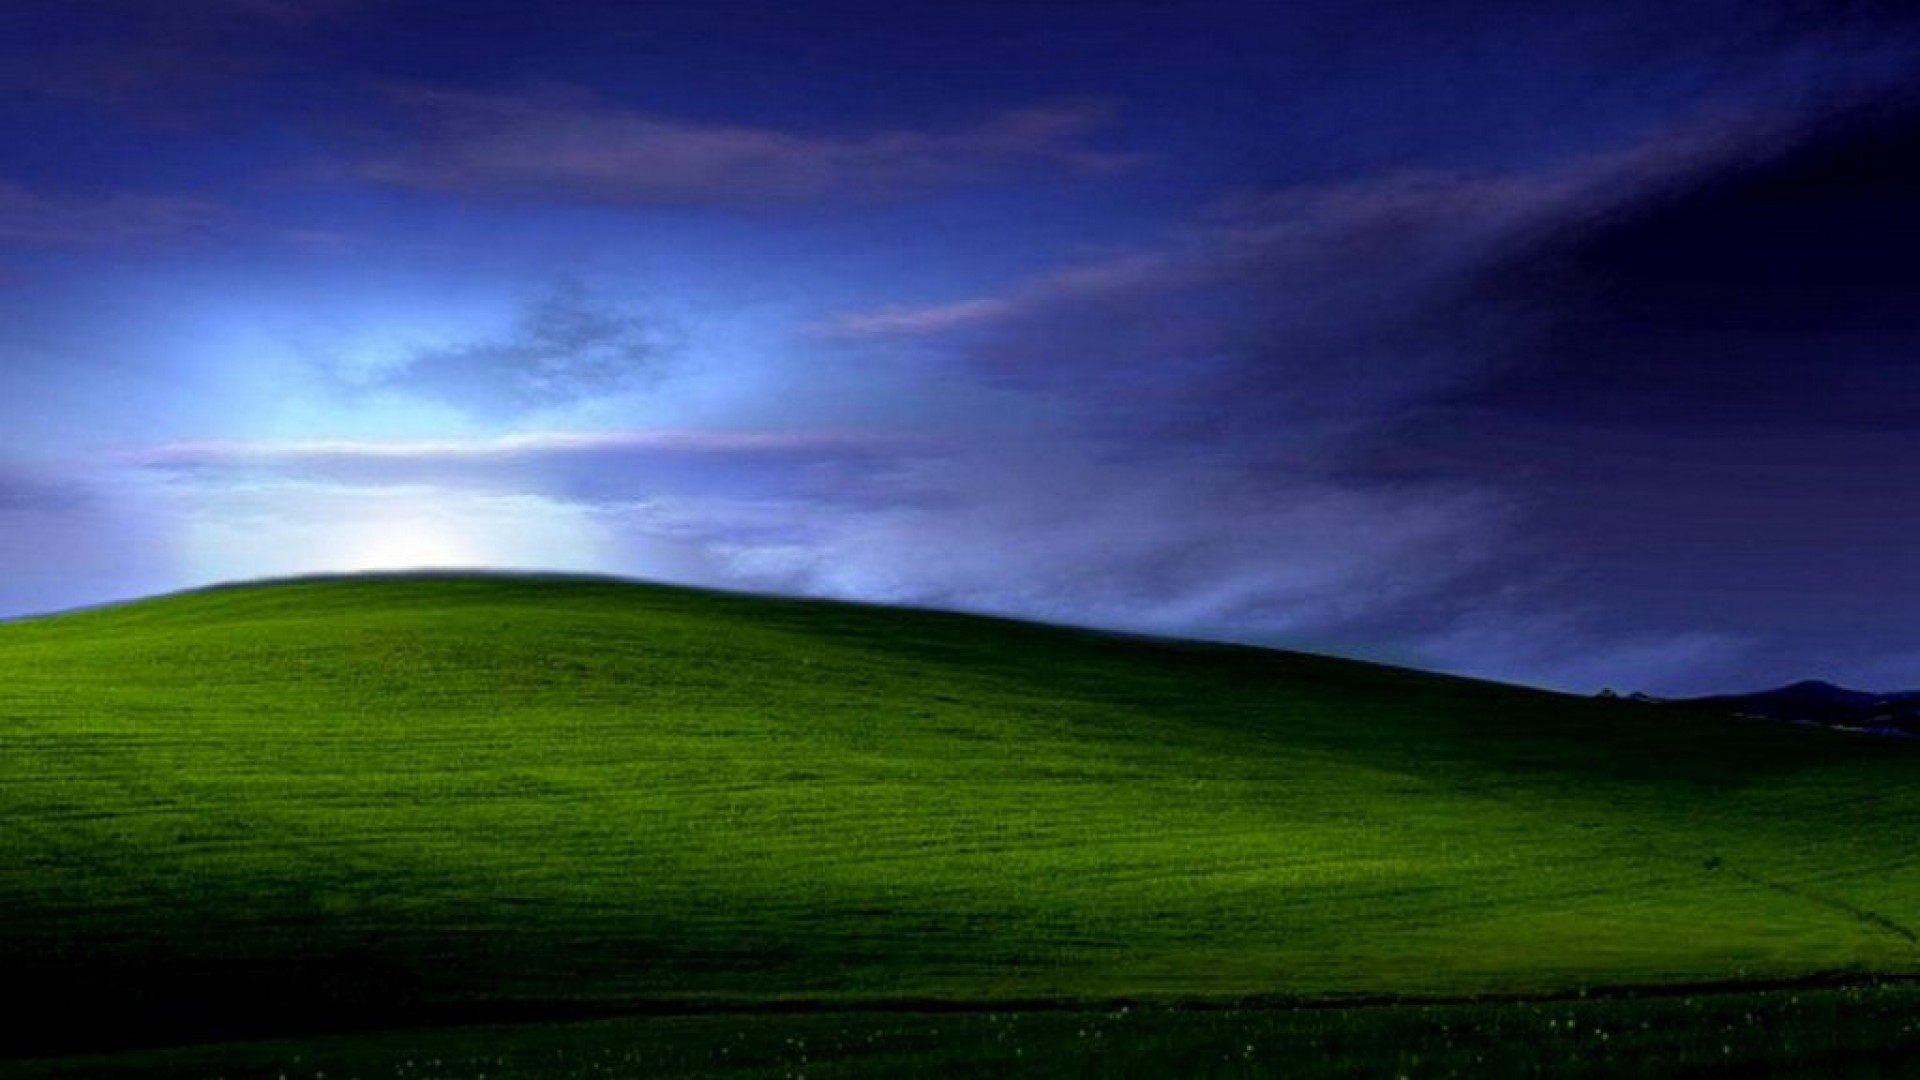 Free Download Windows Xp Wallpapers Bliss [1920x1080] For Your